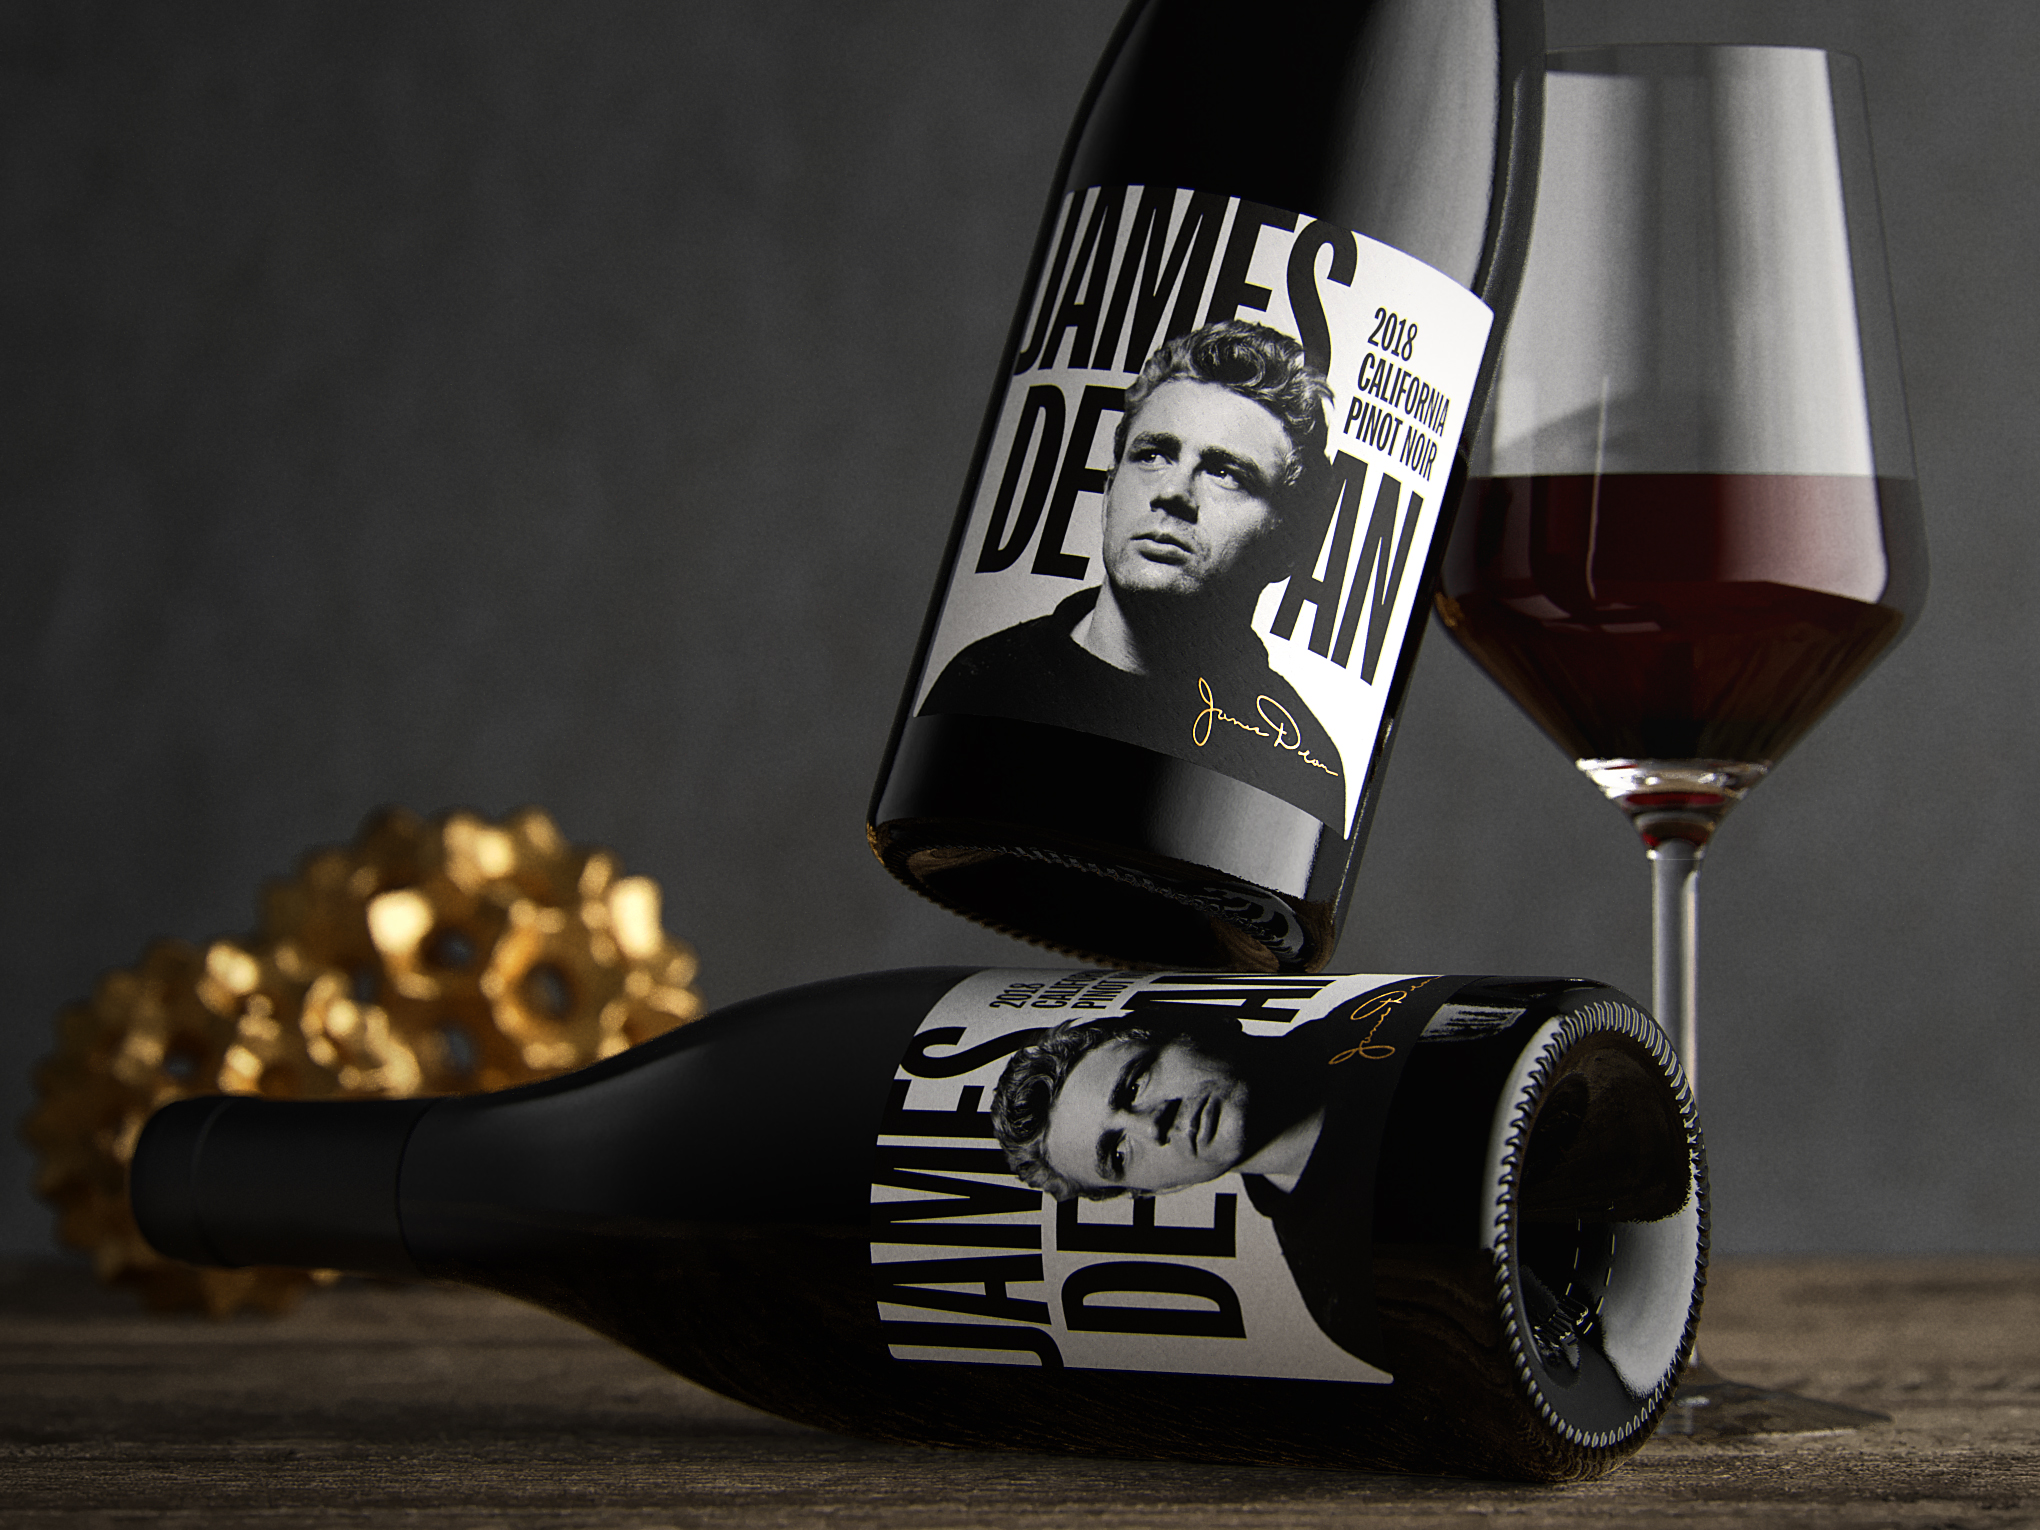 James Dean Pinot Noir Front Wine Label with Wine Glass